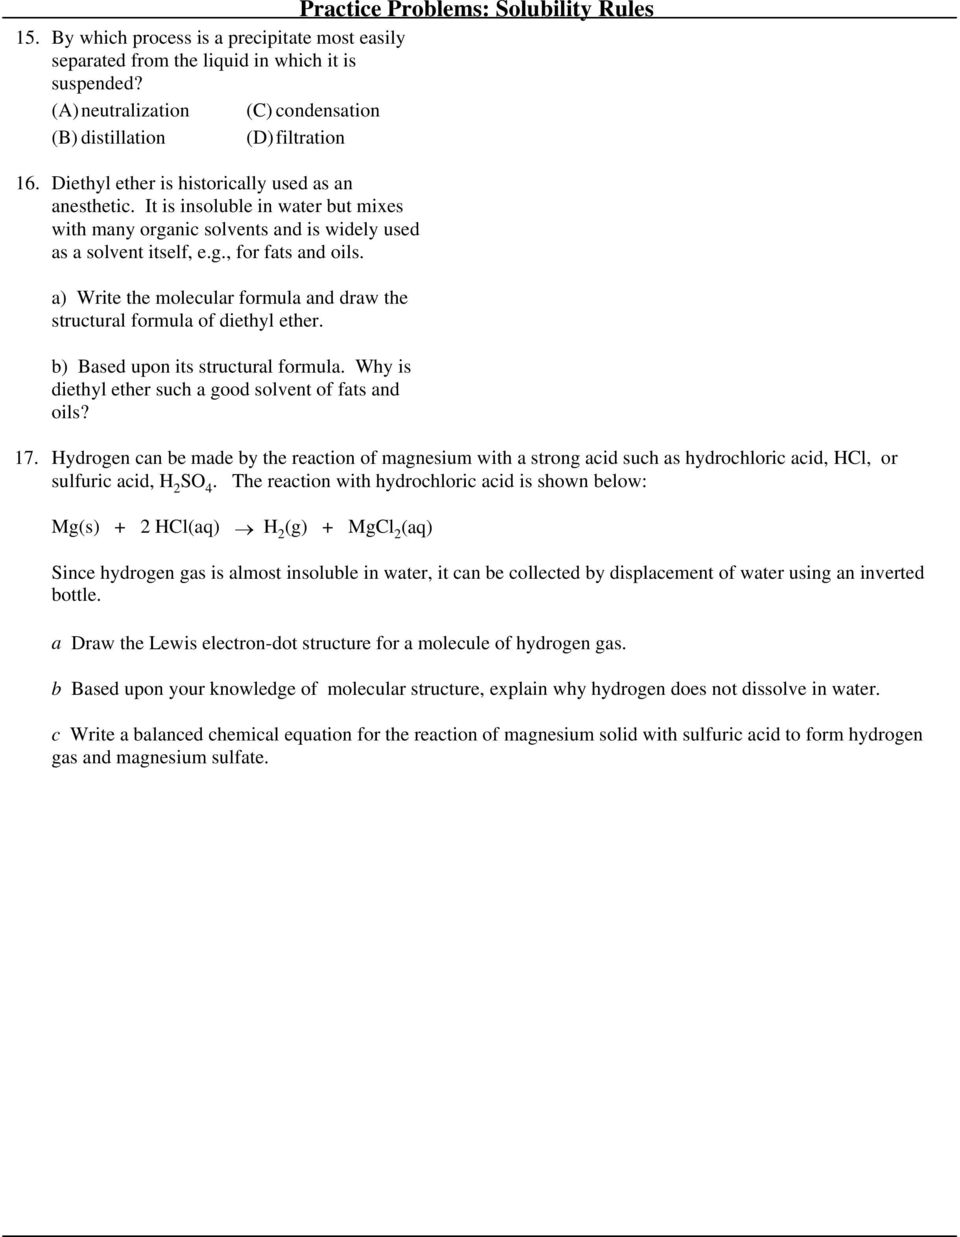 Practice Problems Solubility Rules Pdf